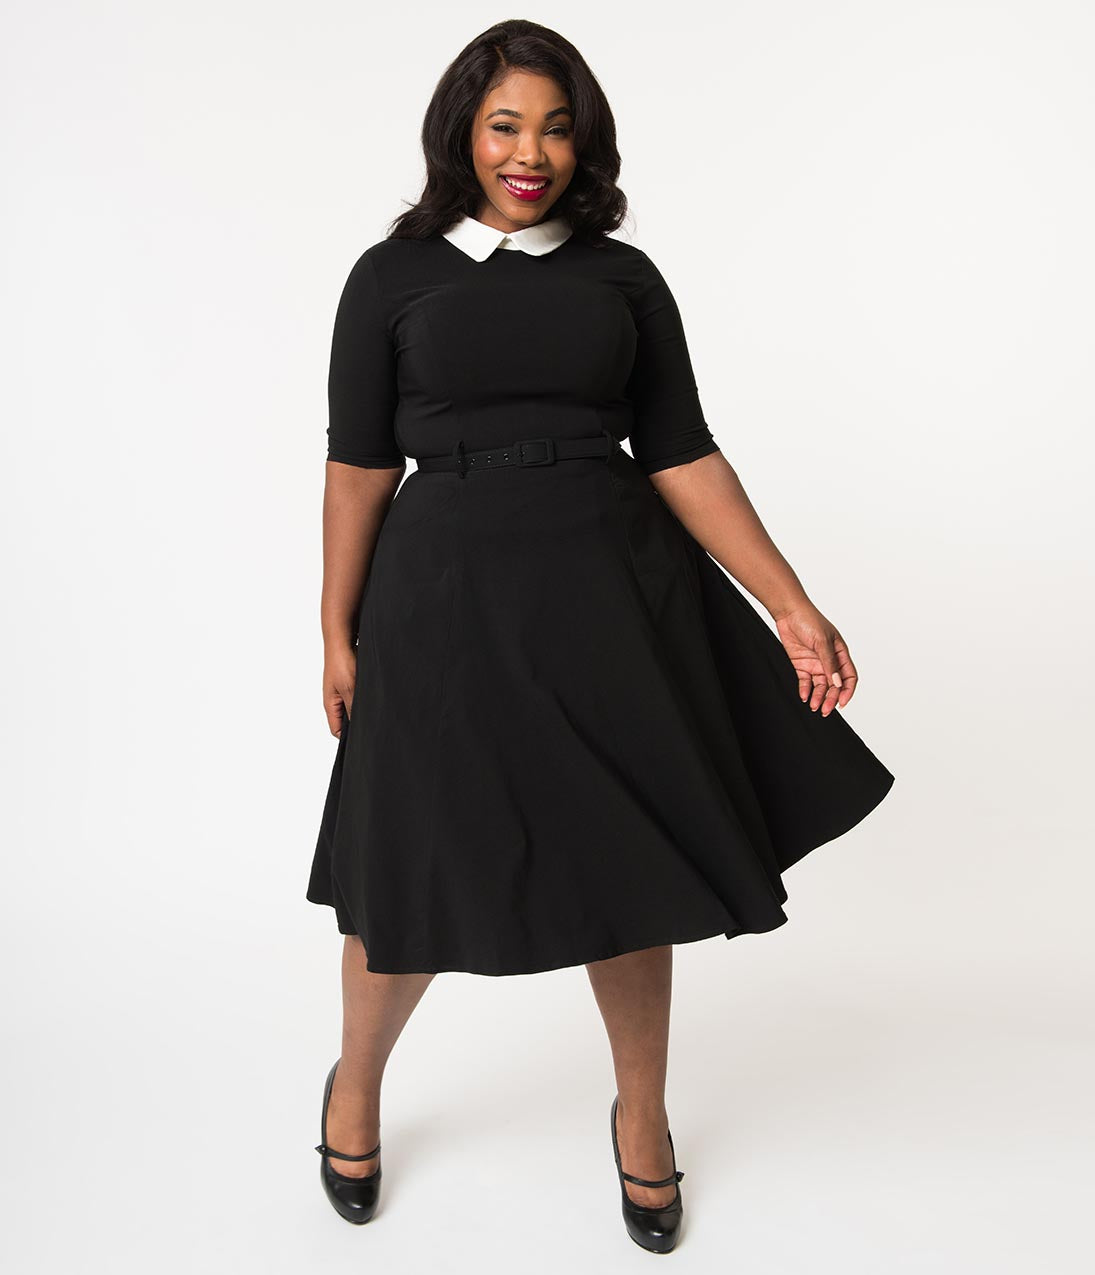 60s 70s Plus Size Dresses, Clothing, Costumes Collectif Plus Size Black Stretch  Ivory Collar Winona Swing Dress $68.00 AT vintagedancer.com